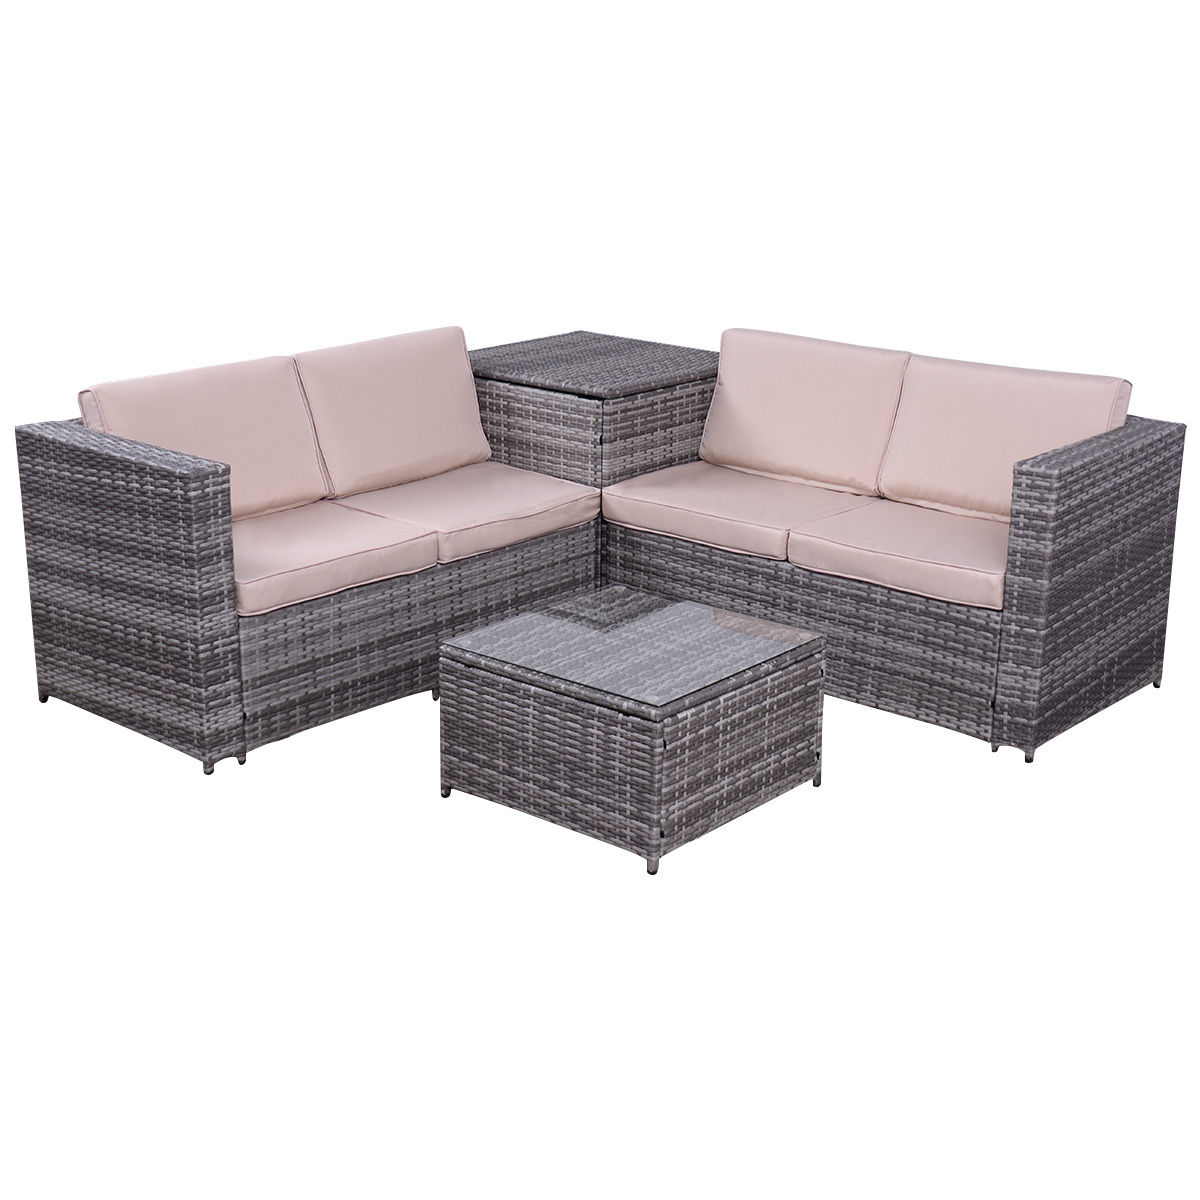 sofa box dfs skill 2 seater 4pcs patio rattan wicker furniture set loveseat cushioned w storage